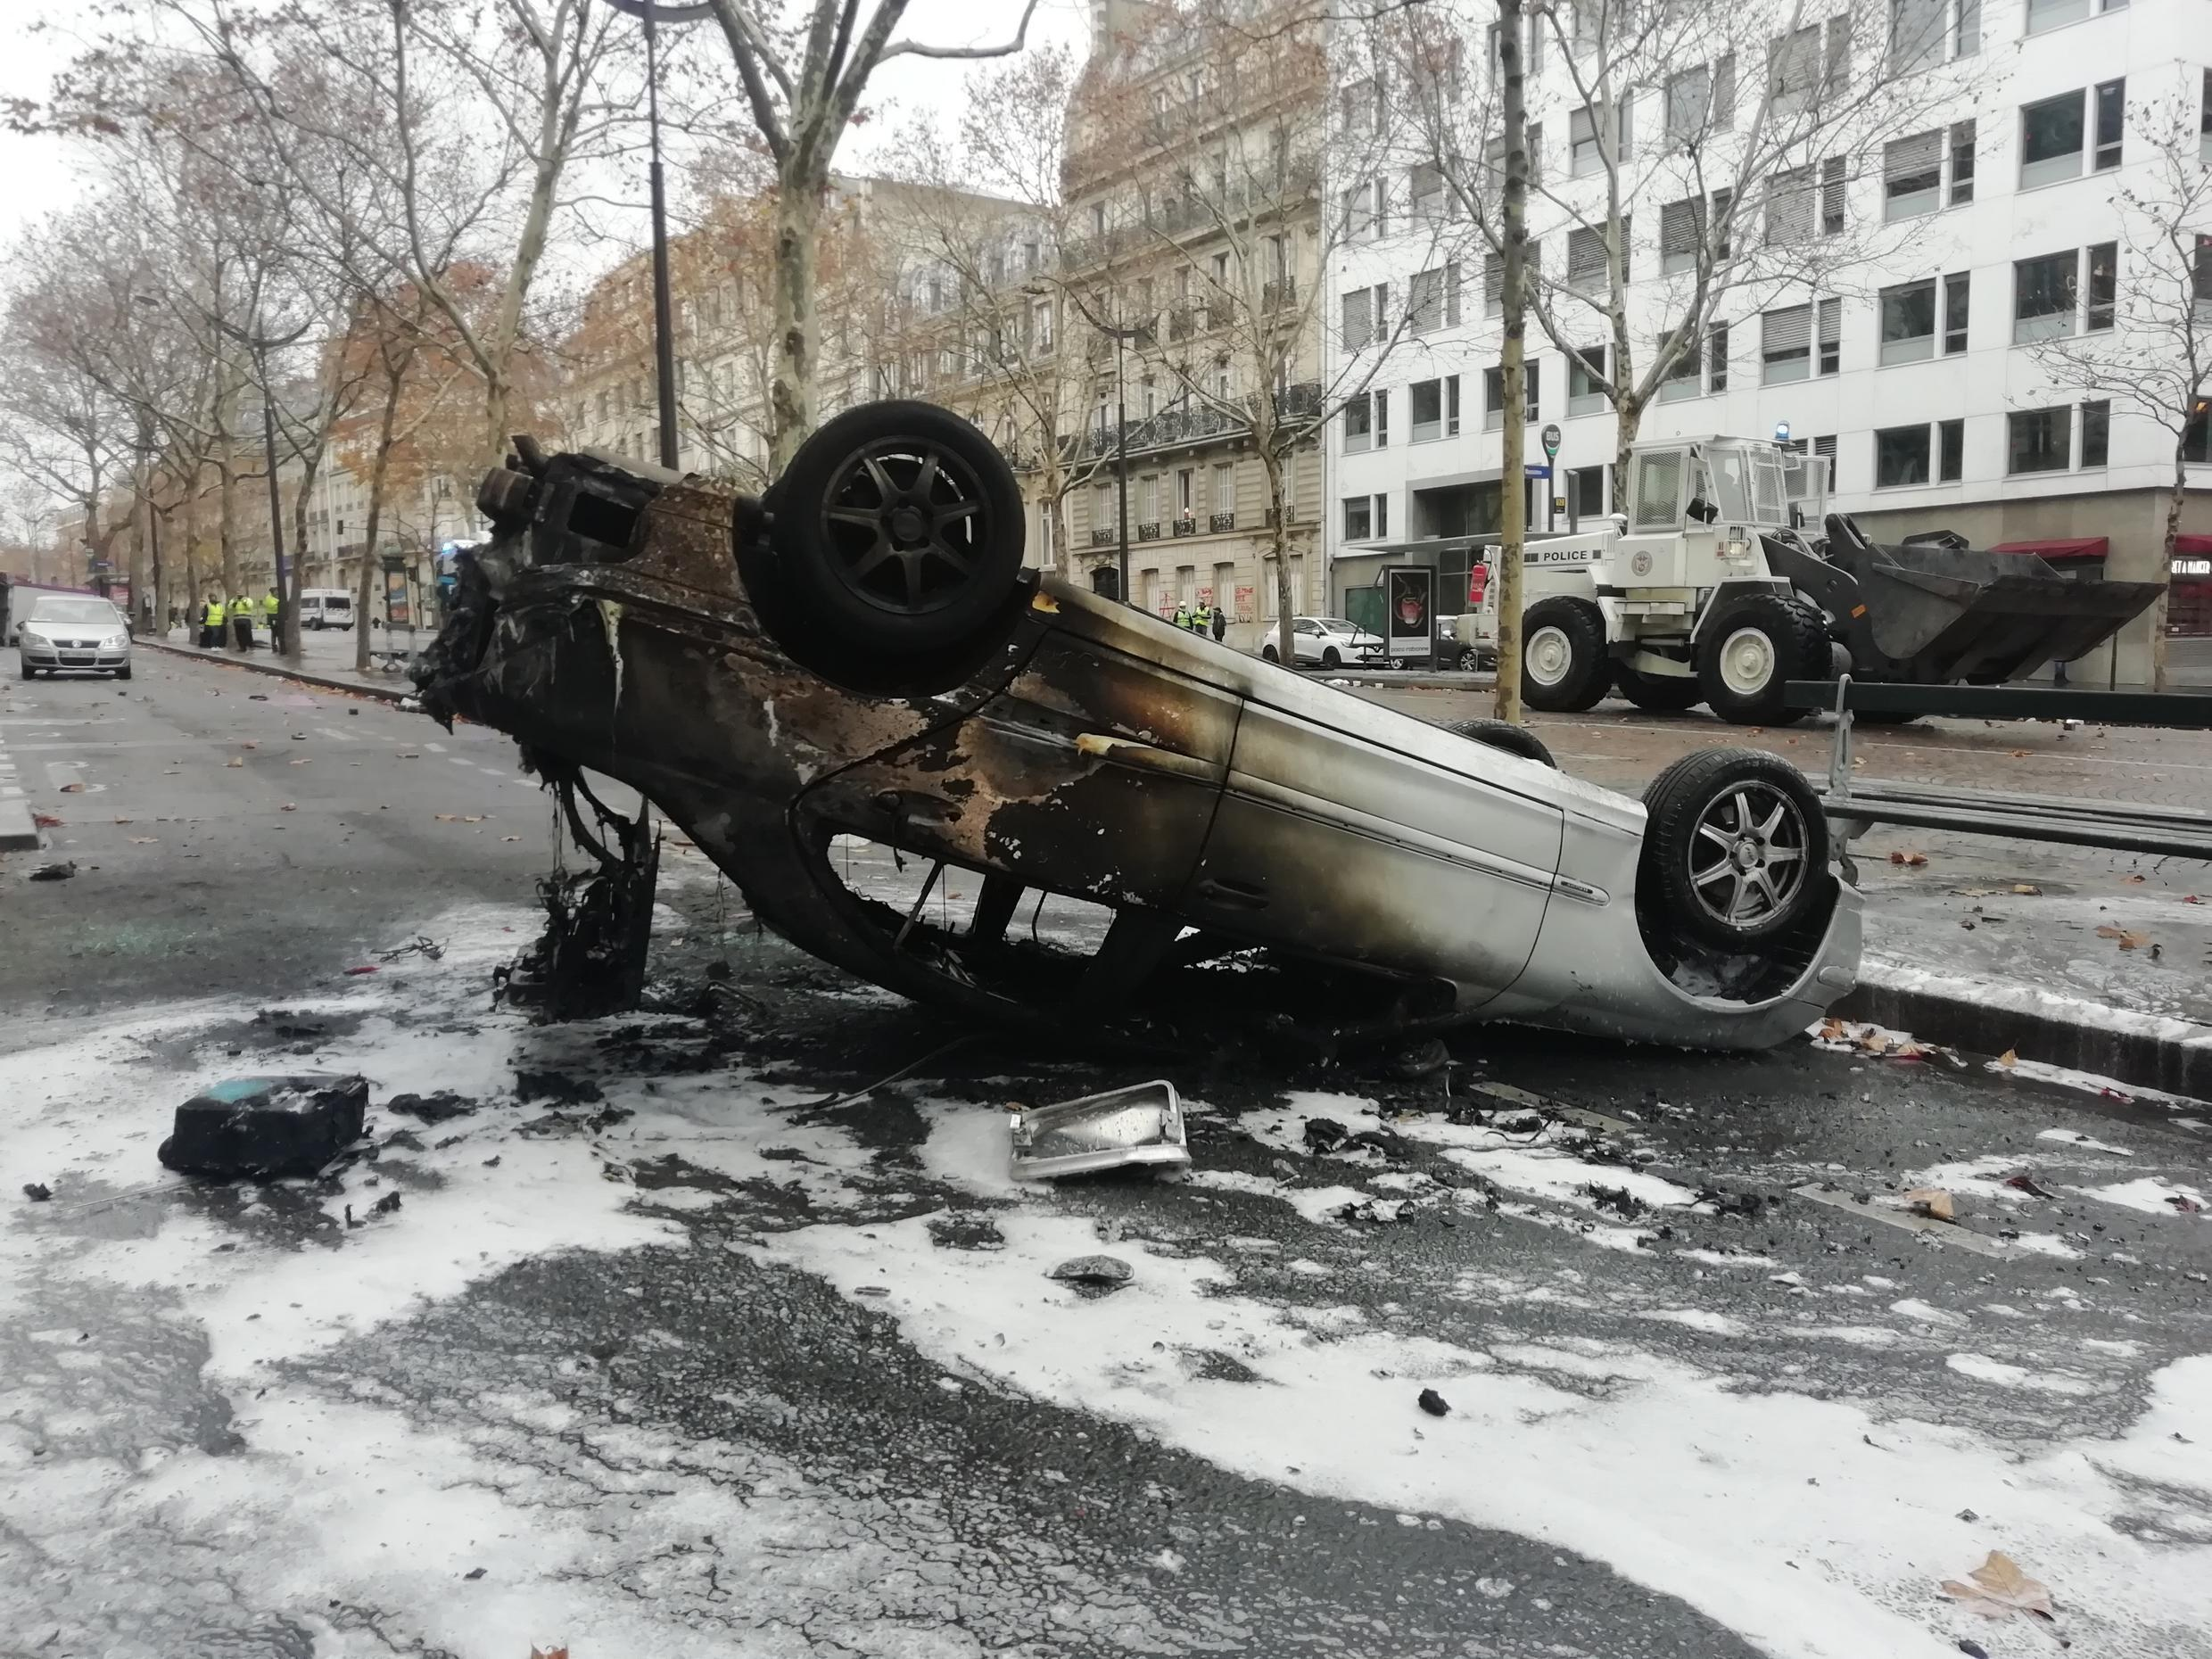 Several cars were burnt in the area surrounding the Arc de Triomphe.